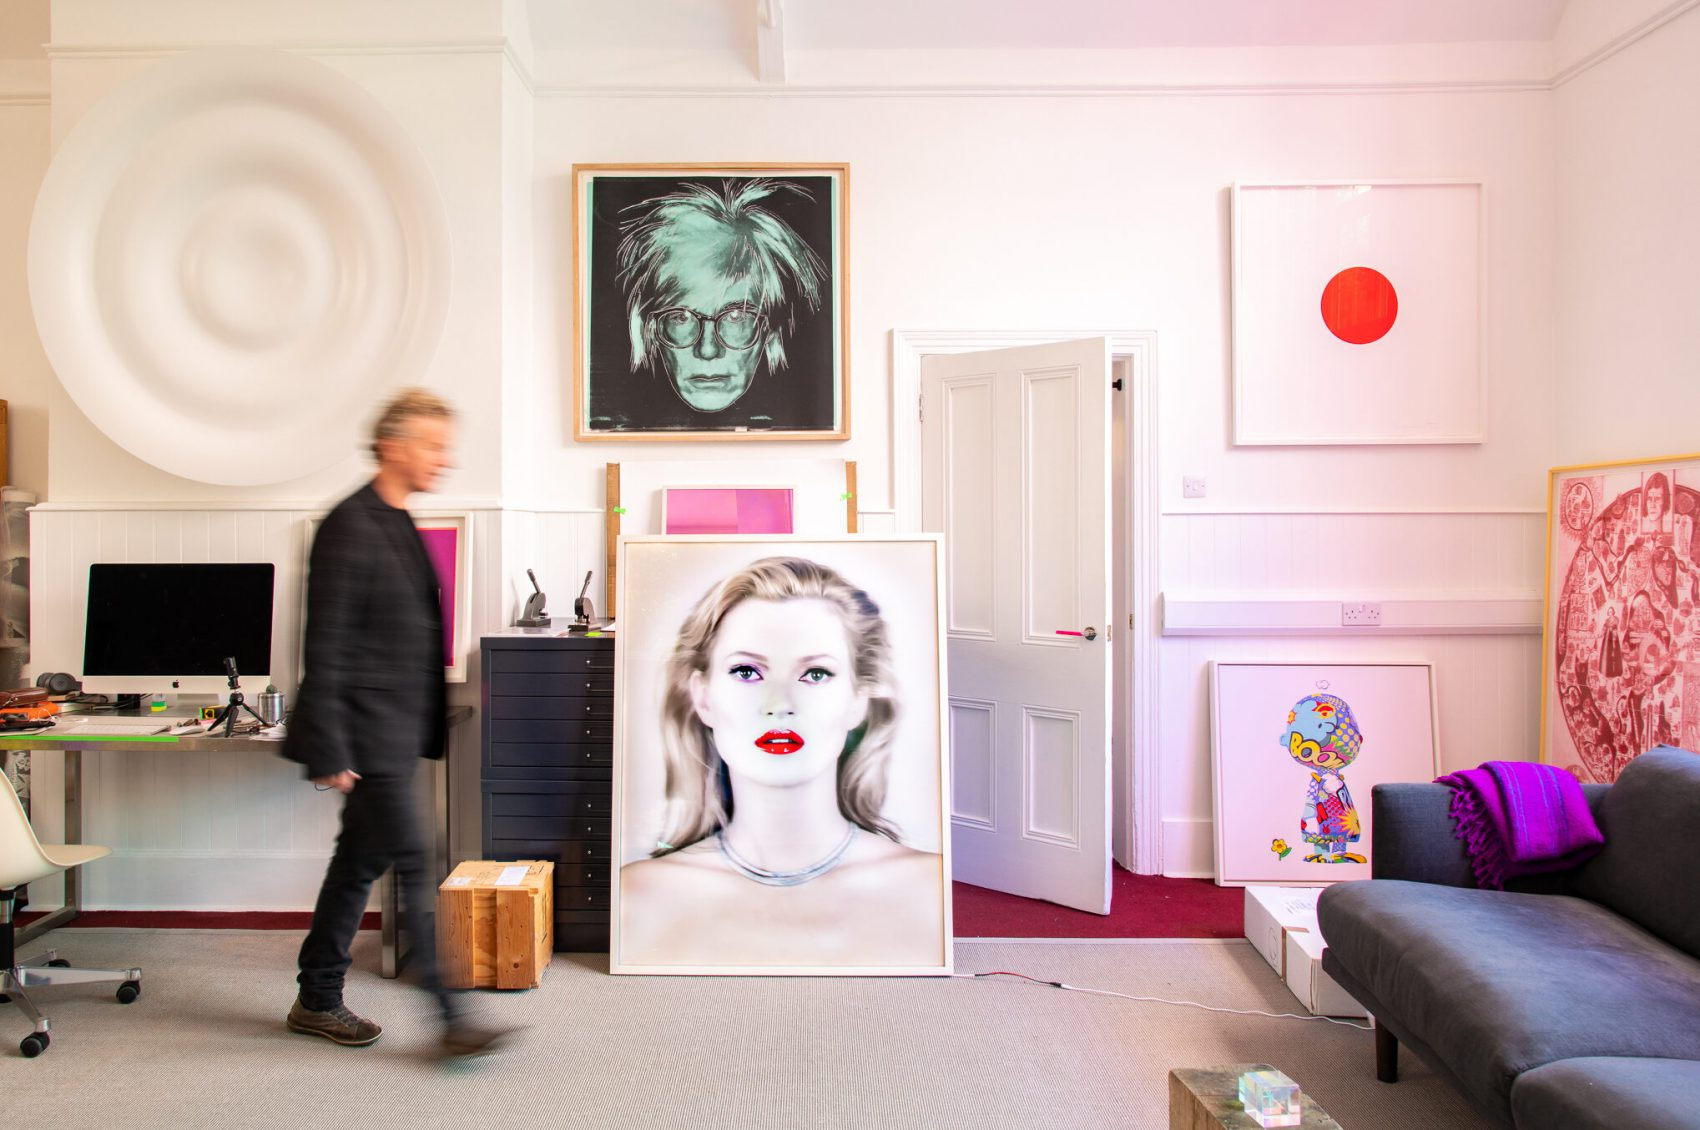 Kate Moss by Chris Levine and Damien Hirst framed by Pauli Frames